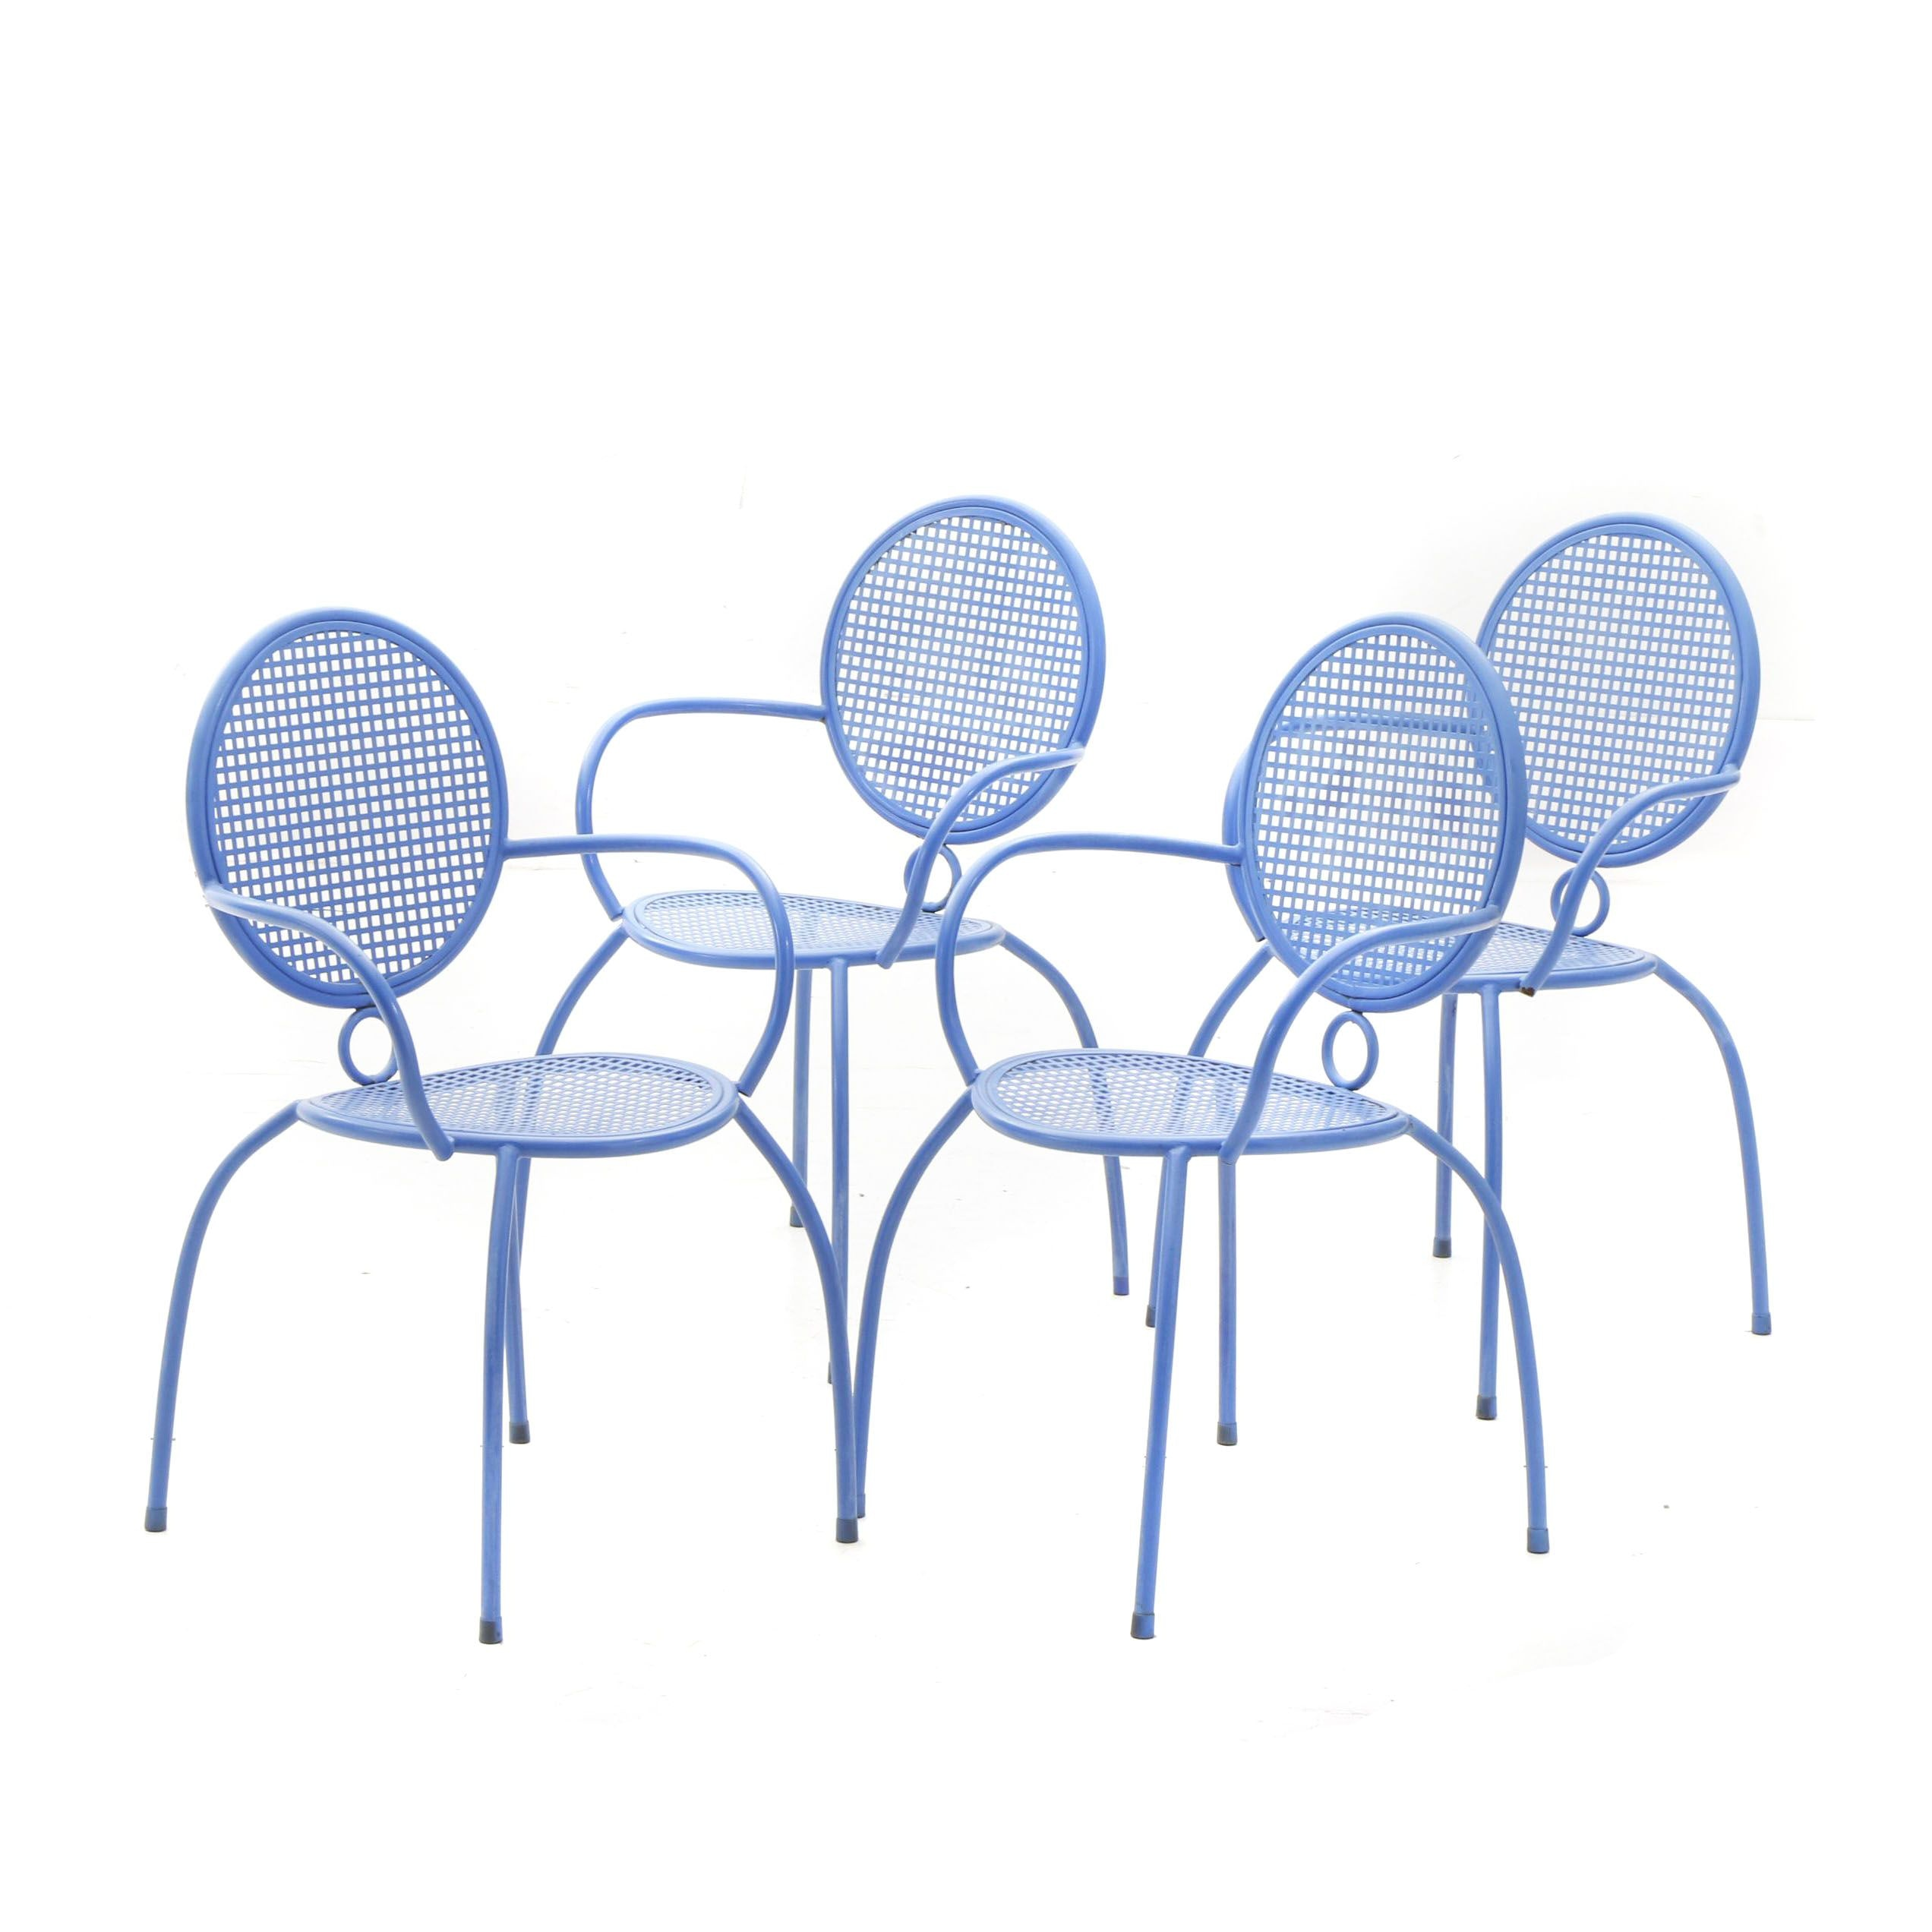 Metal Mesh Round Back Patio Chairs in Blue